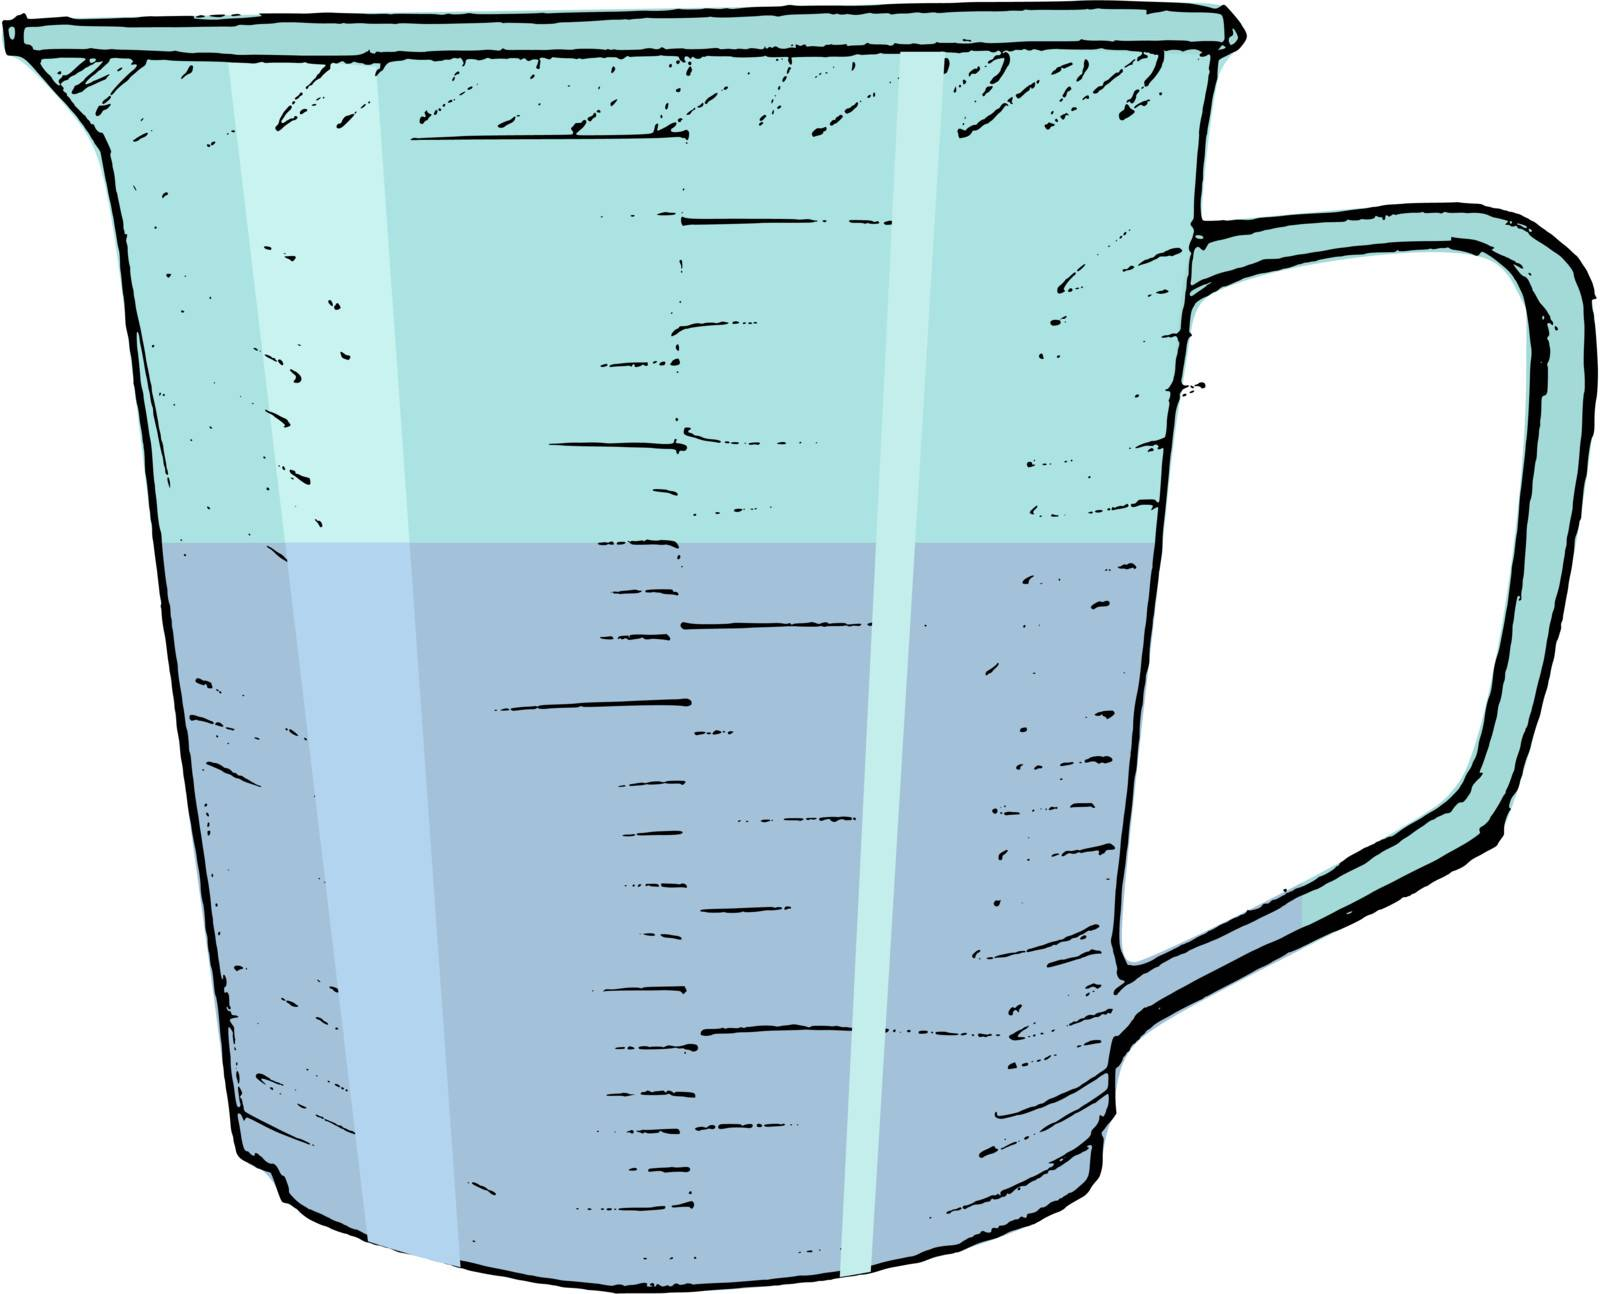 hand drawn, vector, sketch illustration of kitchen measuring cup